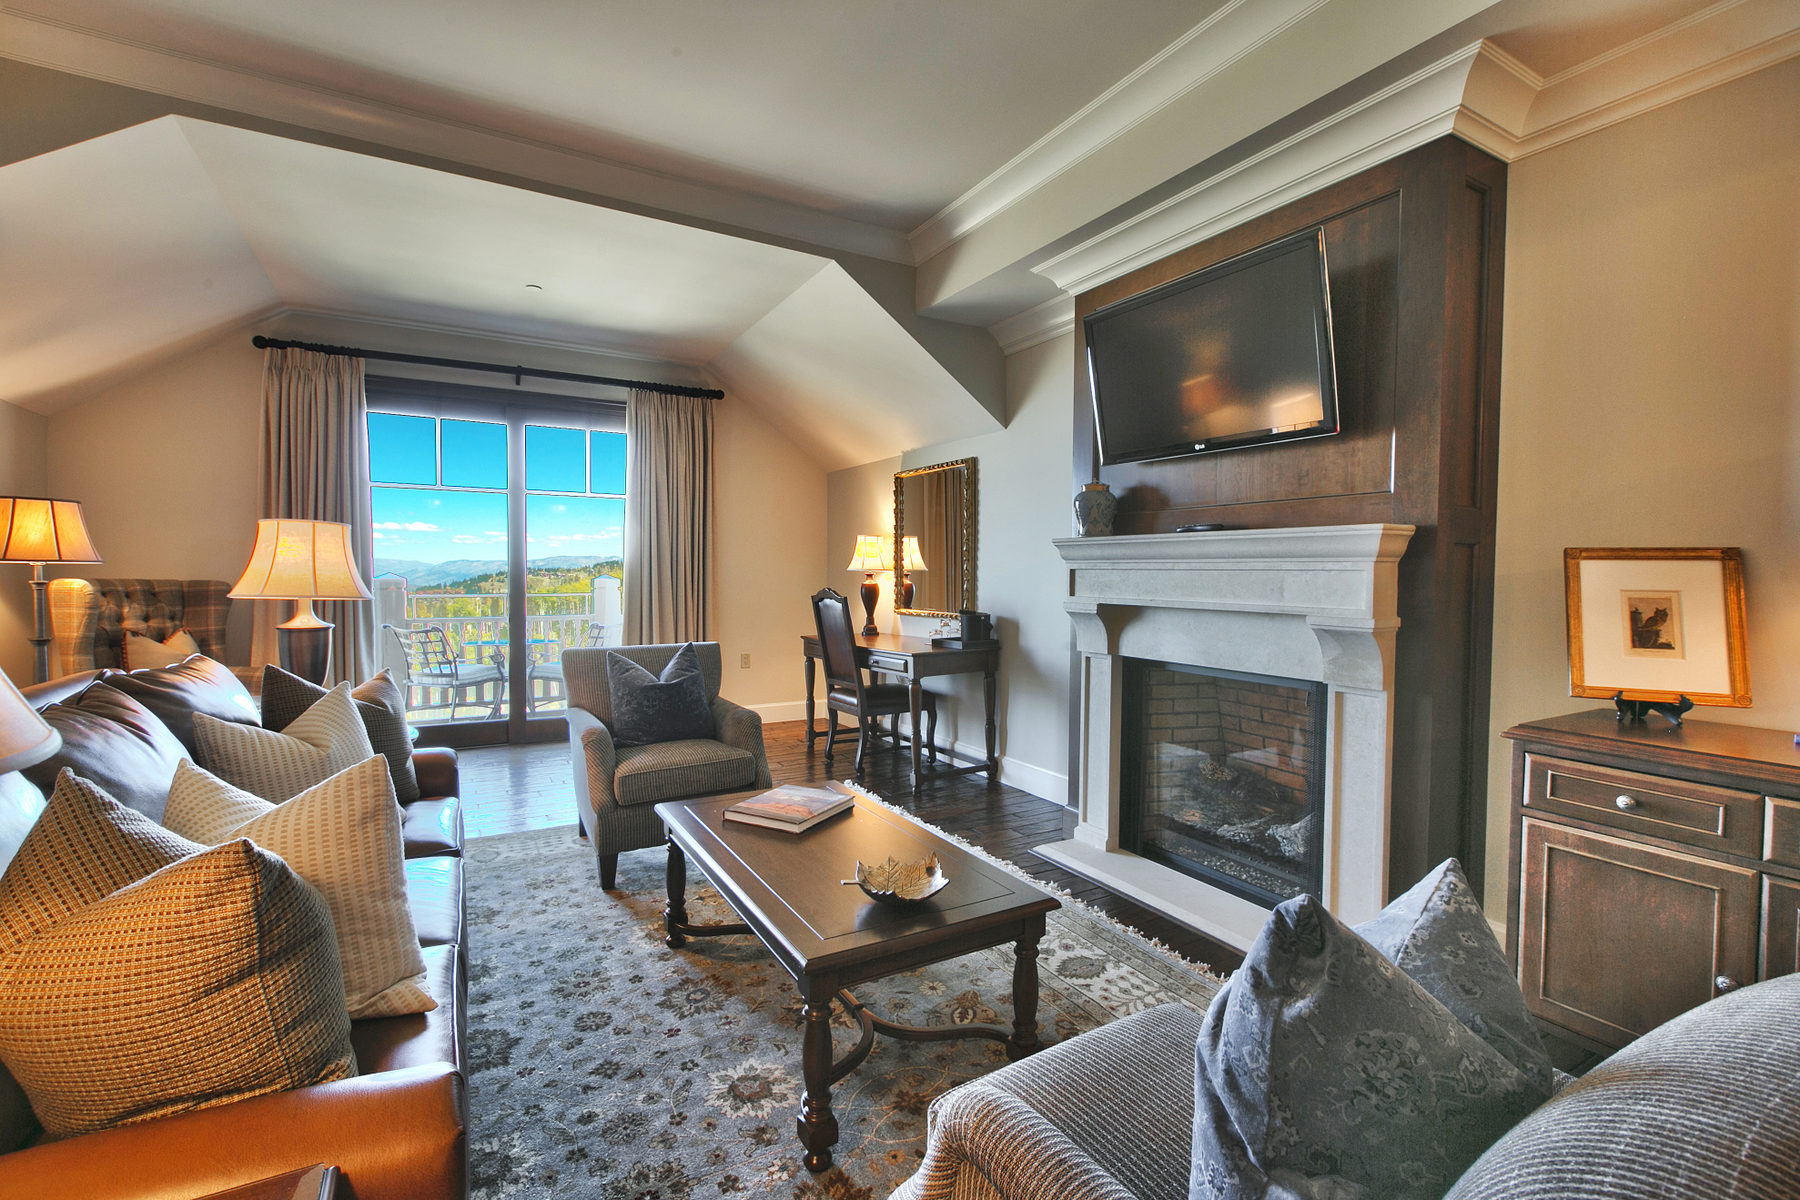 Condominium for Sale at Montage Residences at Deer Valley 9100 Marsac Ave #906 Park City, Utah 84060 United States